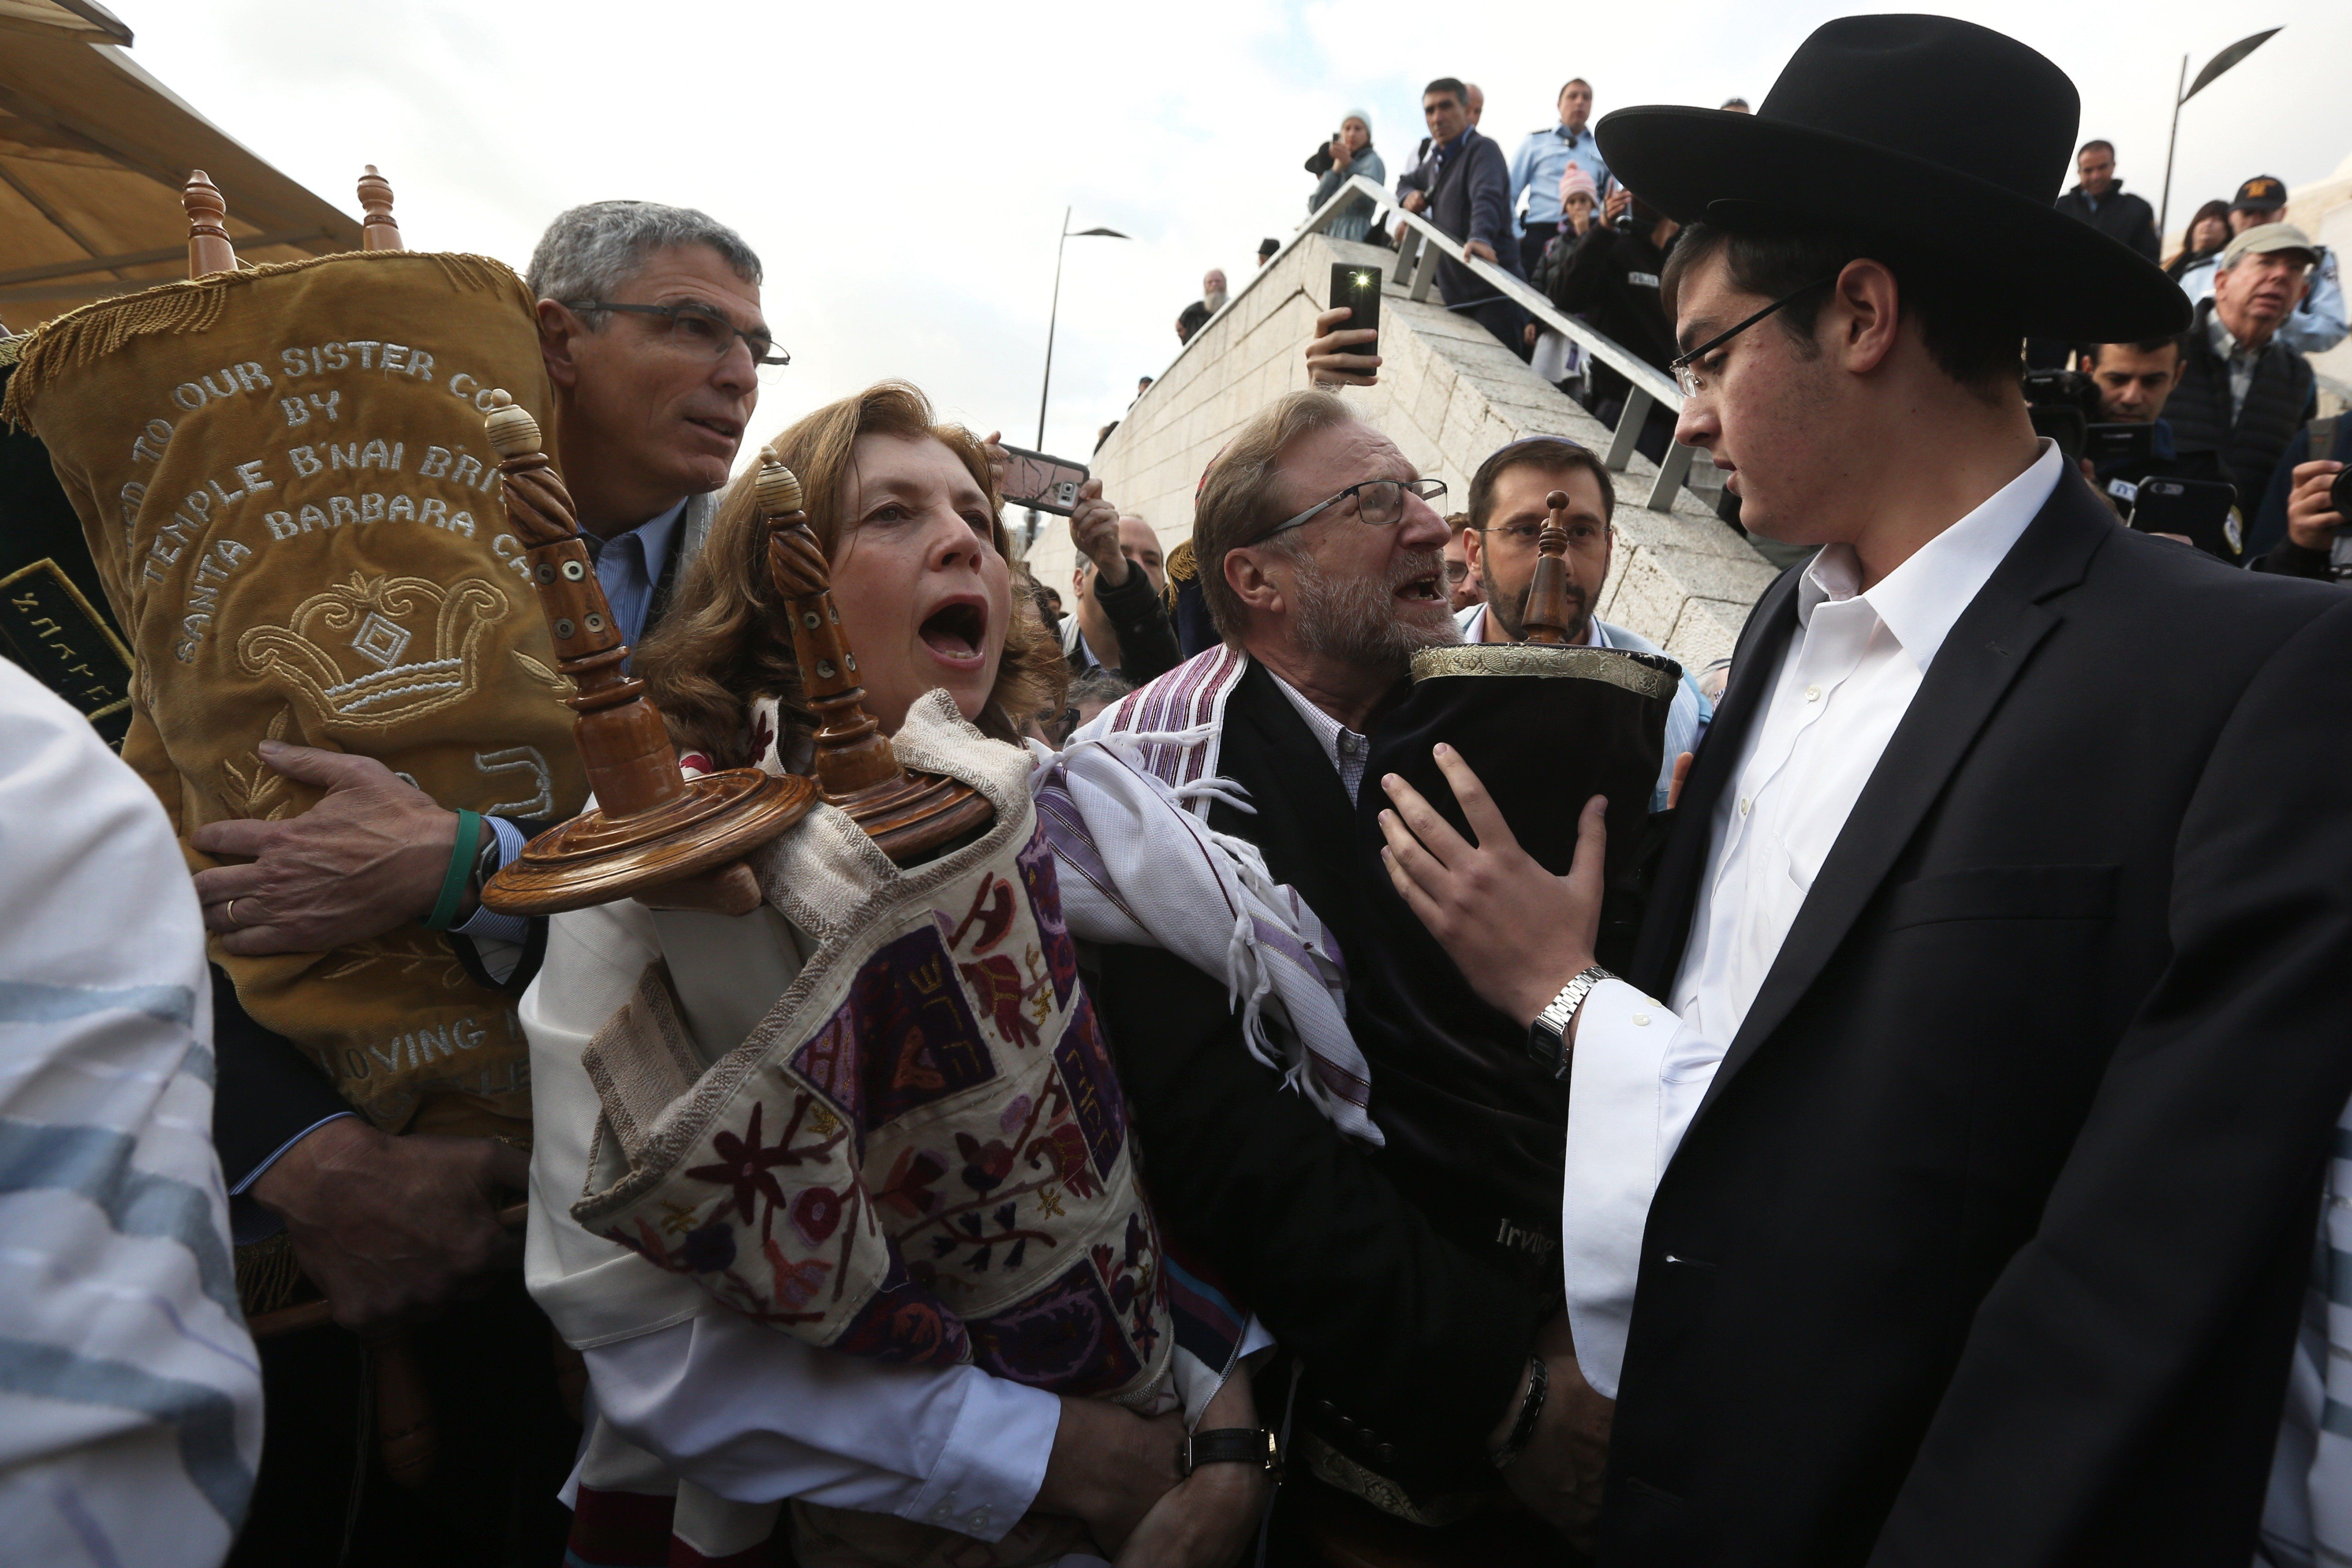 An ultra-Orthodox Jewish man tries to prevent Anat Hoffman (center), the founder of Women of the Wall, from entering the women's section of the Western Wall while carrying a Torah scroll on Nov. 2, 2016.